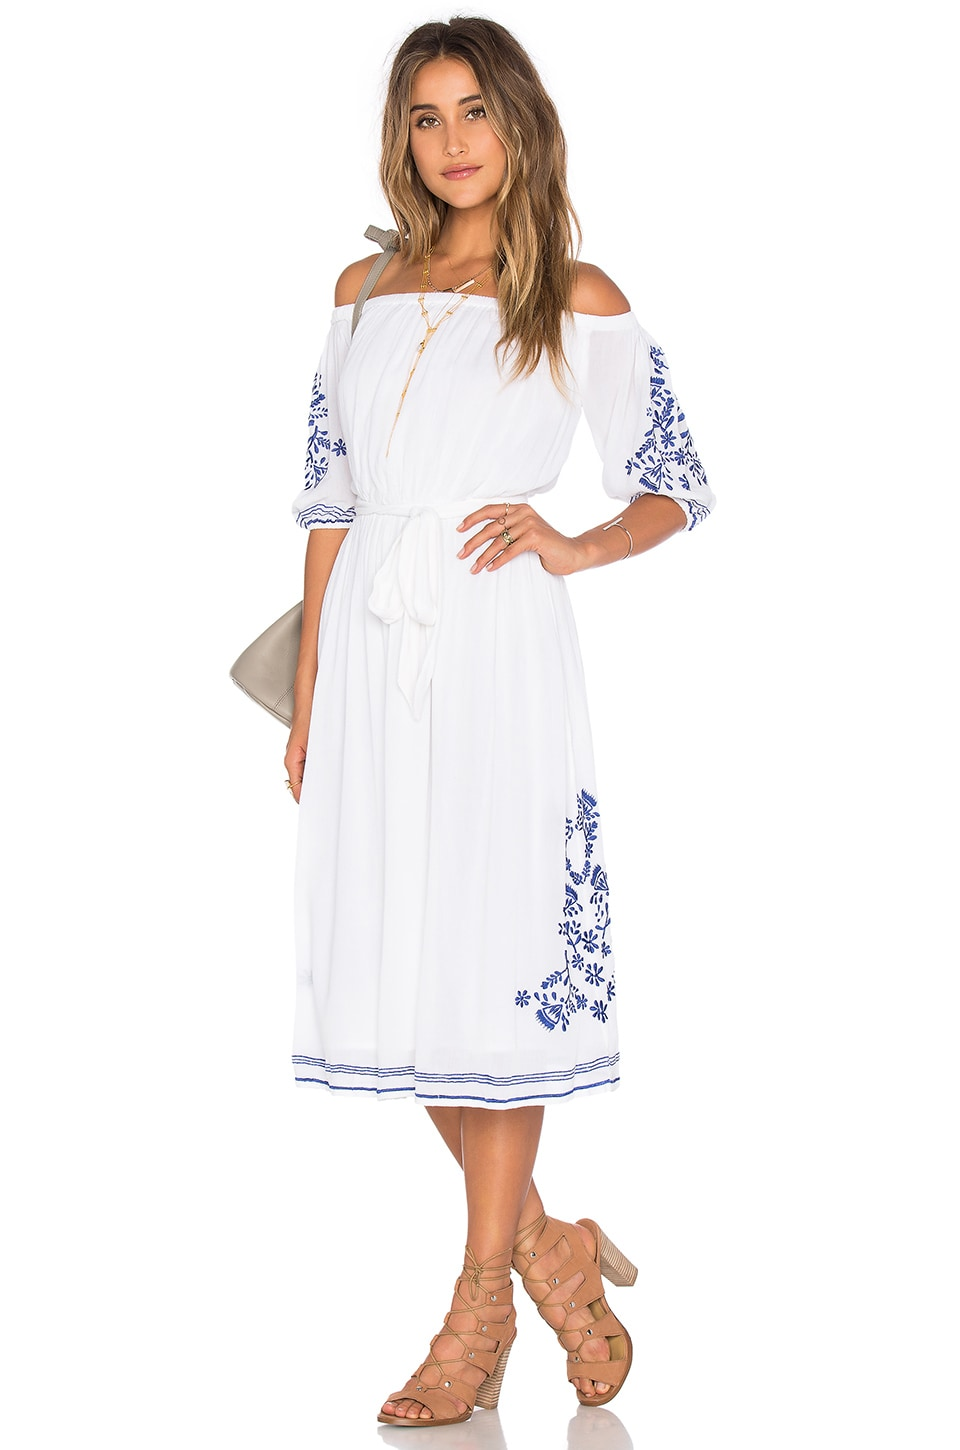 Lovely Things July 2016 - Revolve Tularosa Marty Midi Dress